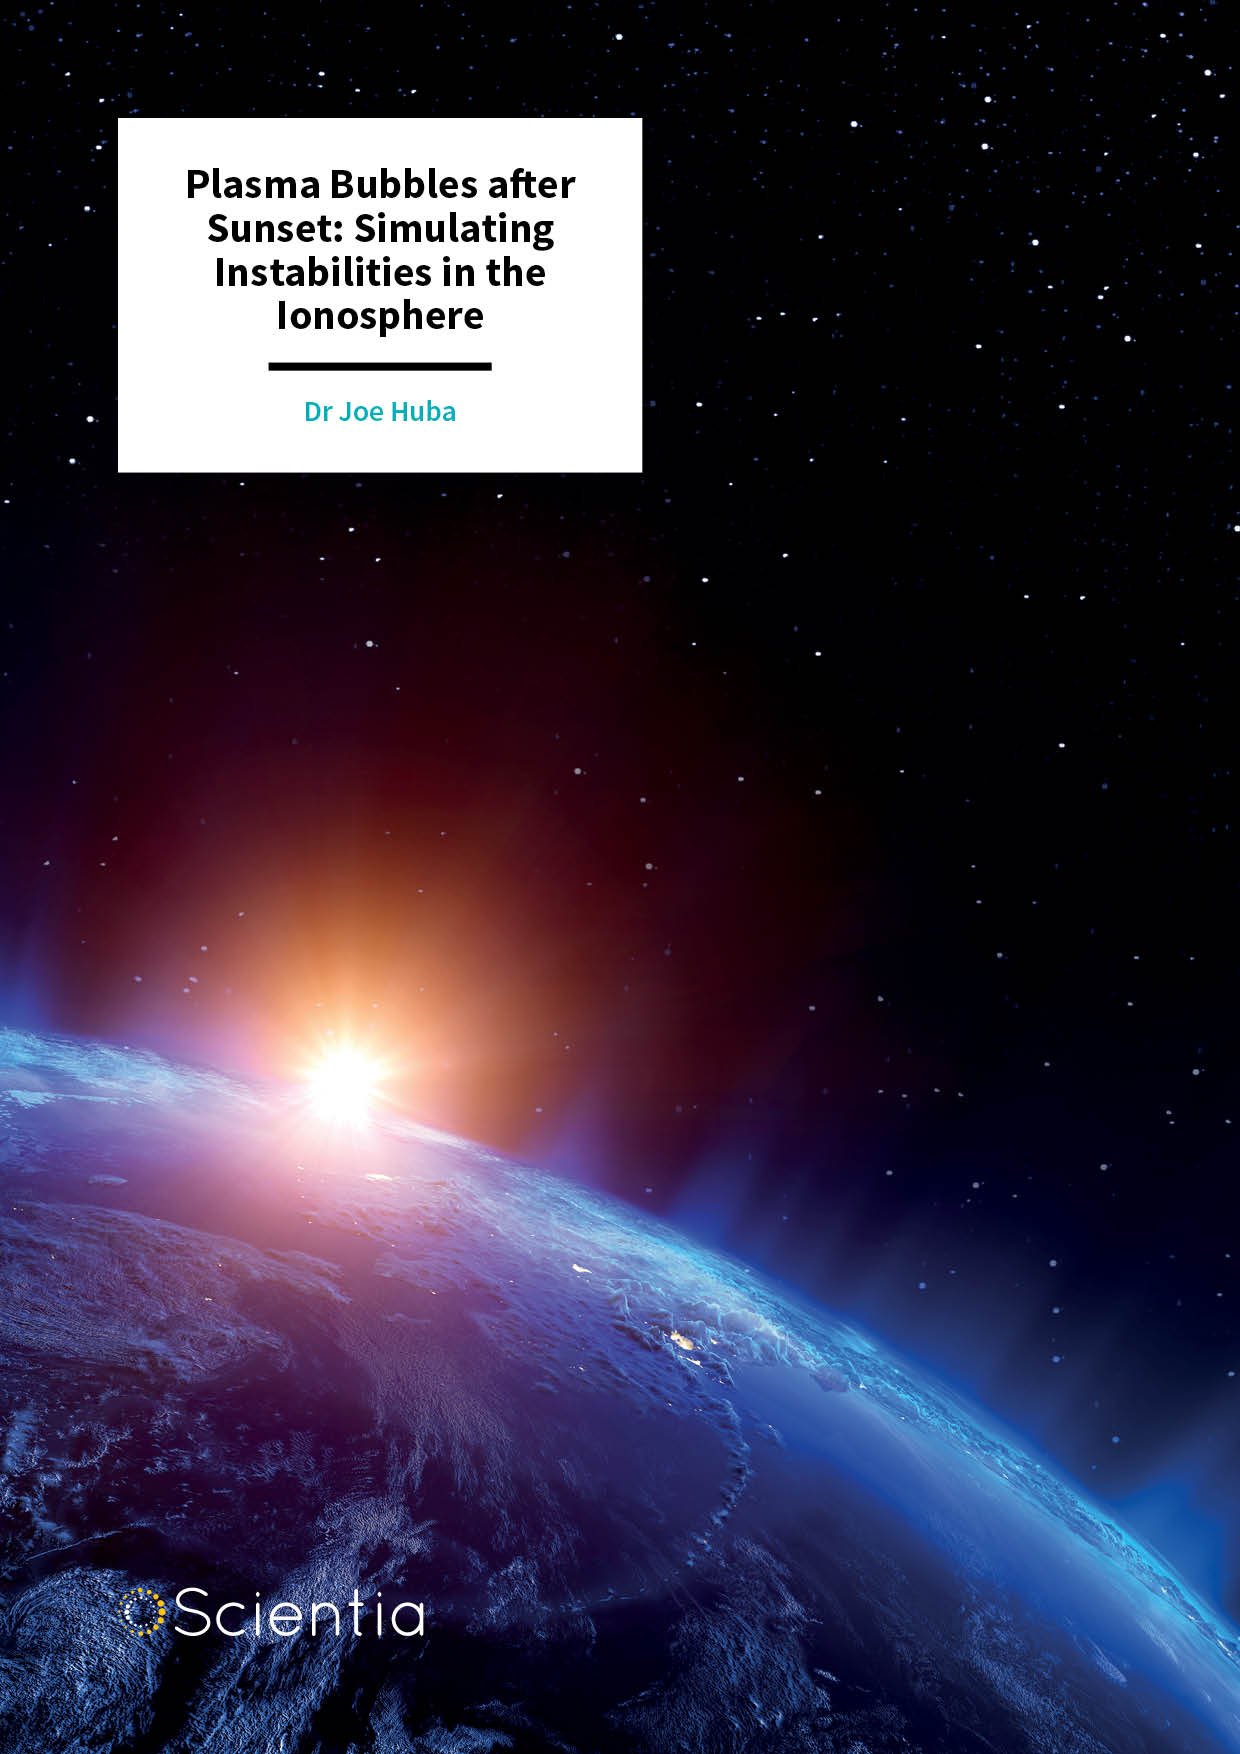 Dr Joe Huba – Plasma Bubbles after Sunset: Simulating Instabilities in the Ionosphere